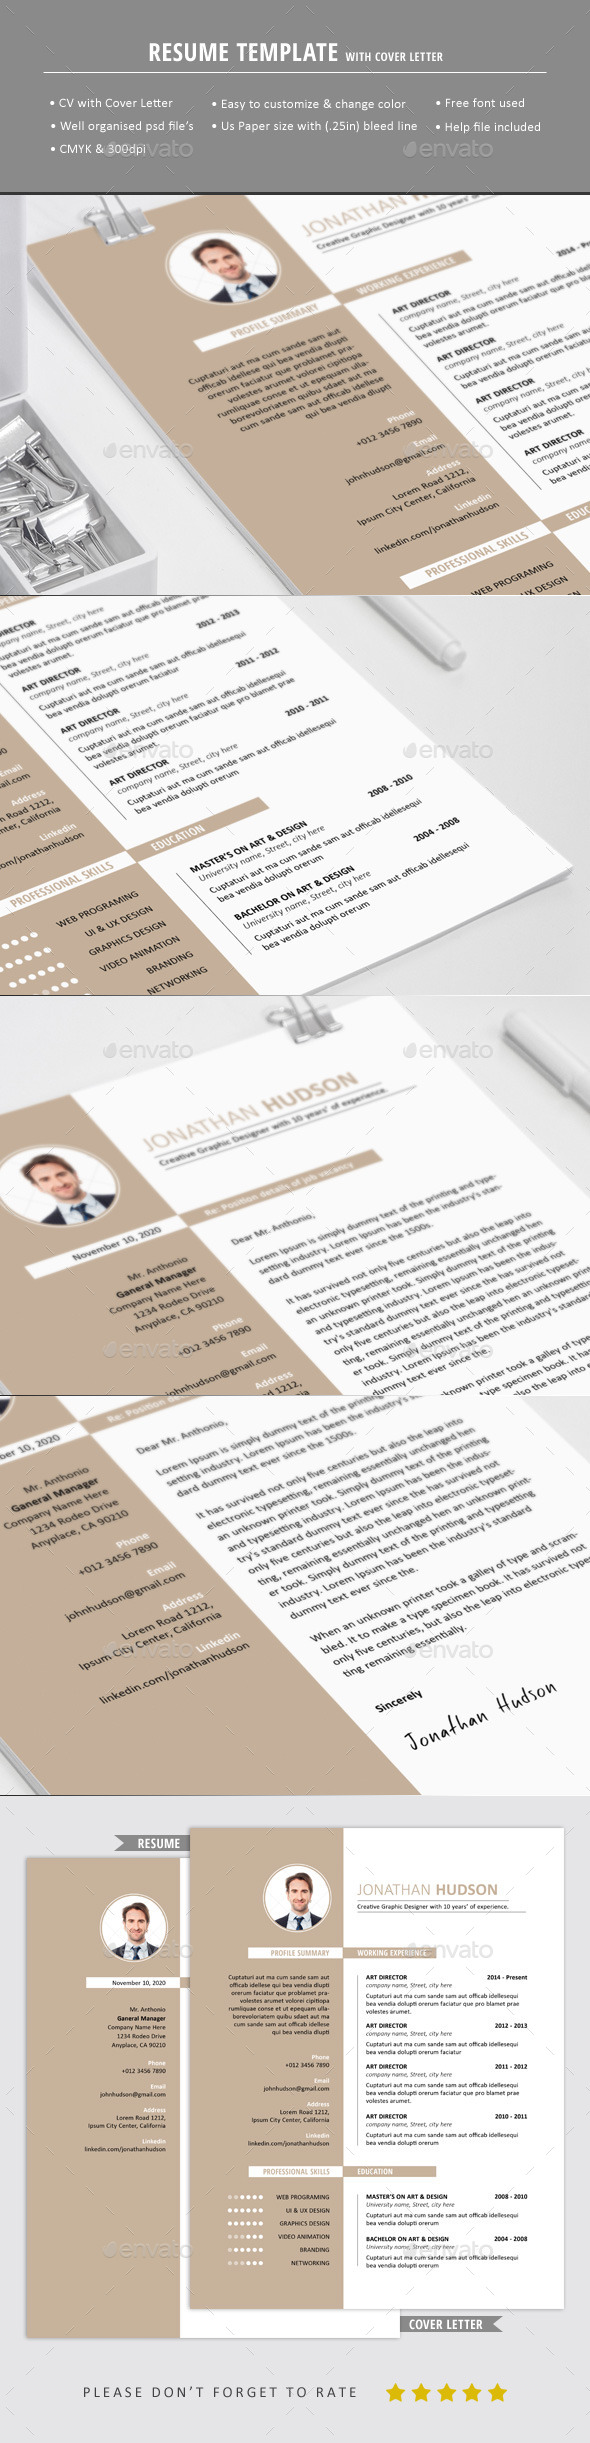 GraphicRiver Resume With Cover Letter 10551147